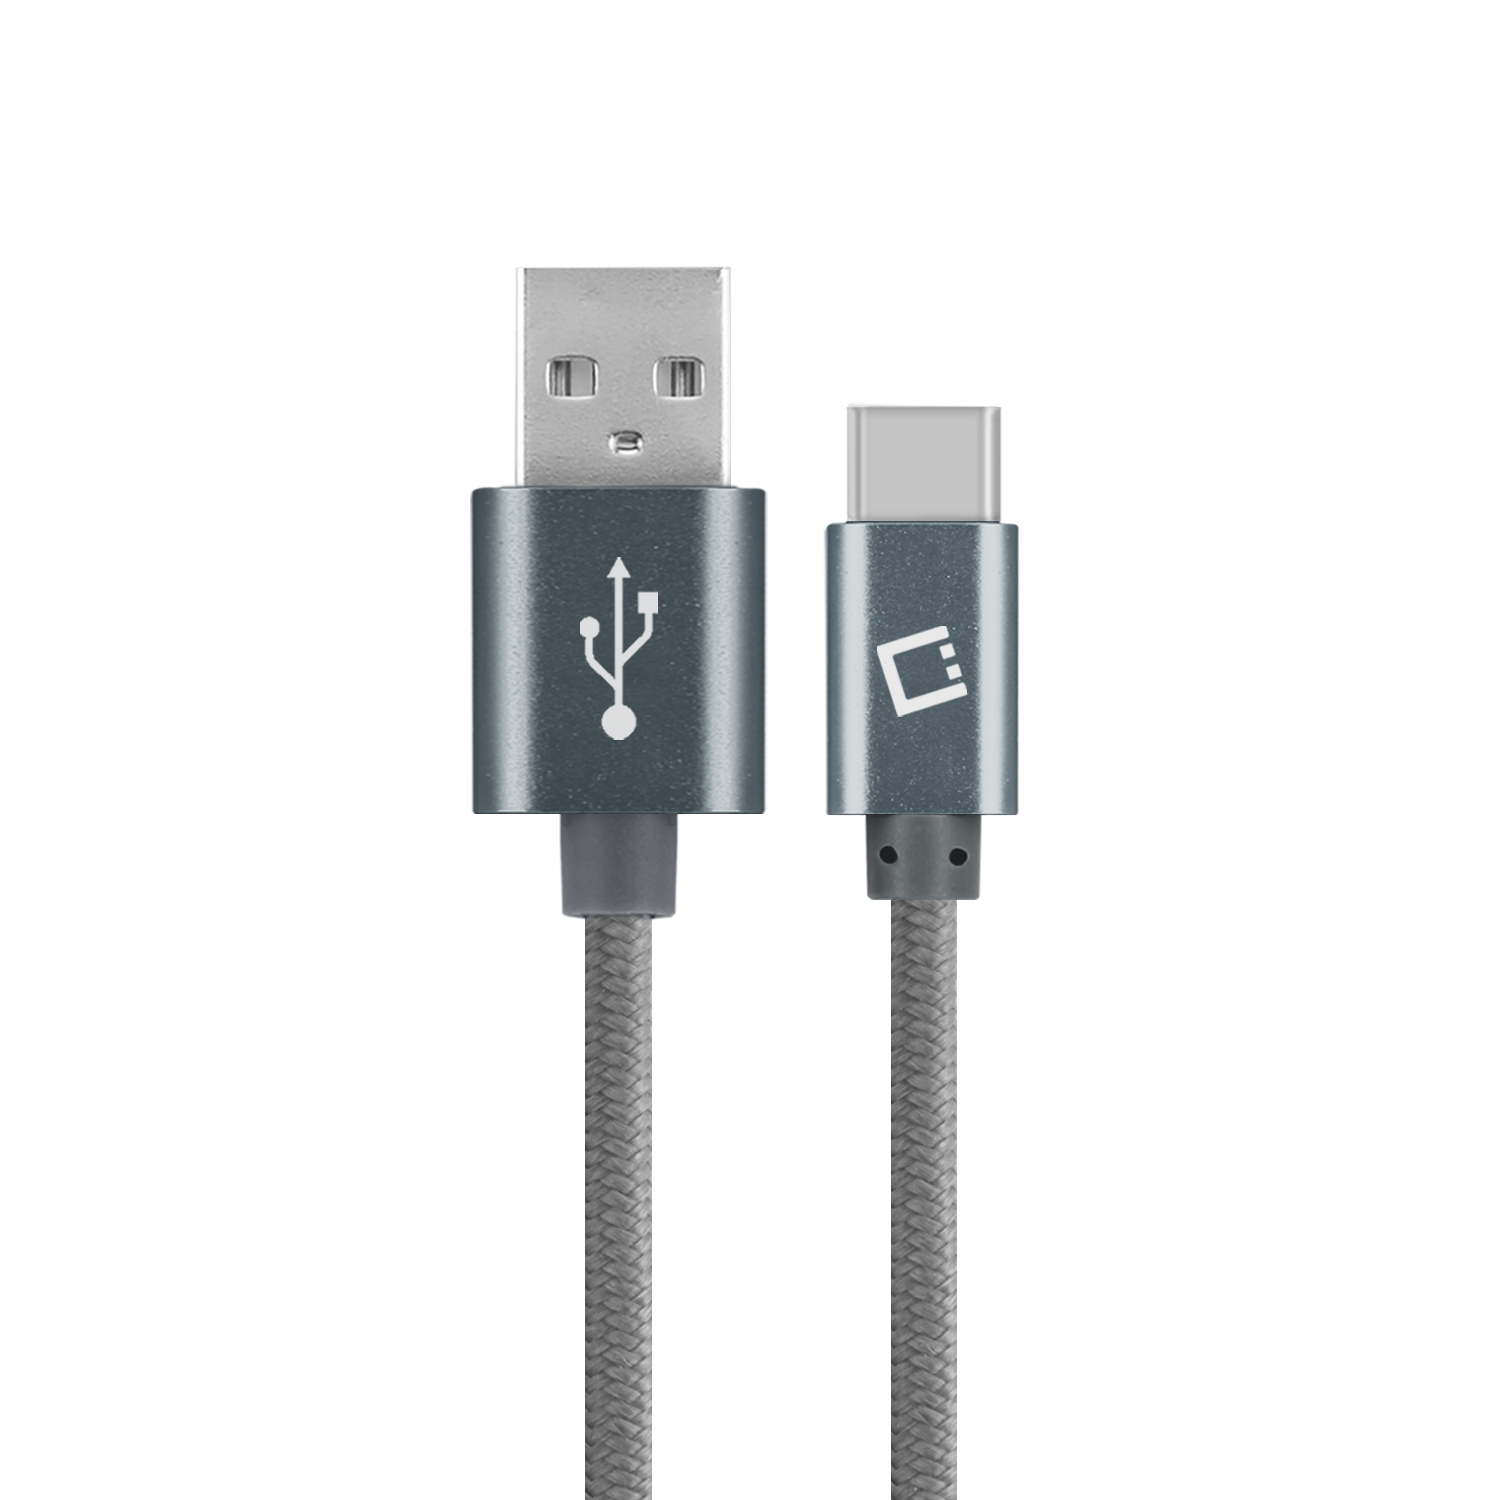 ZTE Blade V8 Pro USB Type-C To Type-A Braided Data Power Cable Grey 4ft Braided